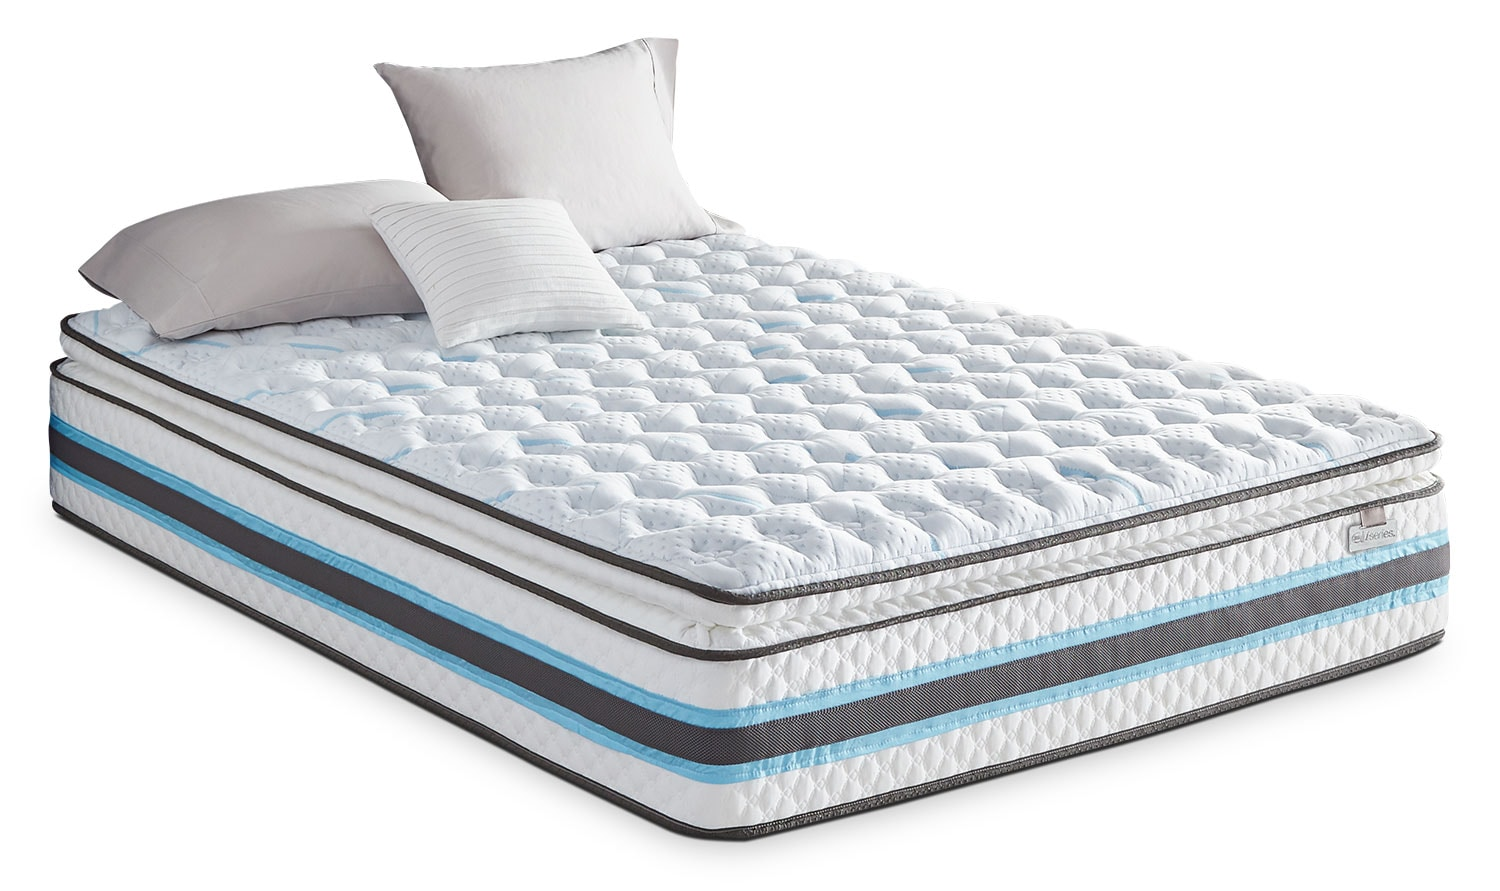 Serta iSeries® Breathtaking Pillow-Top Plush Twin Mattress